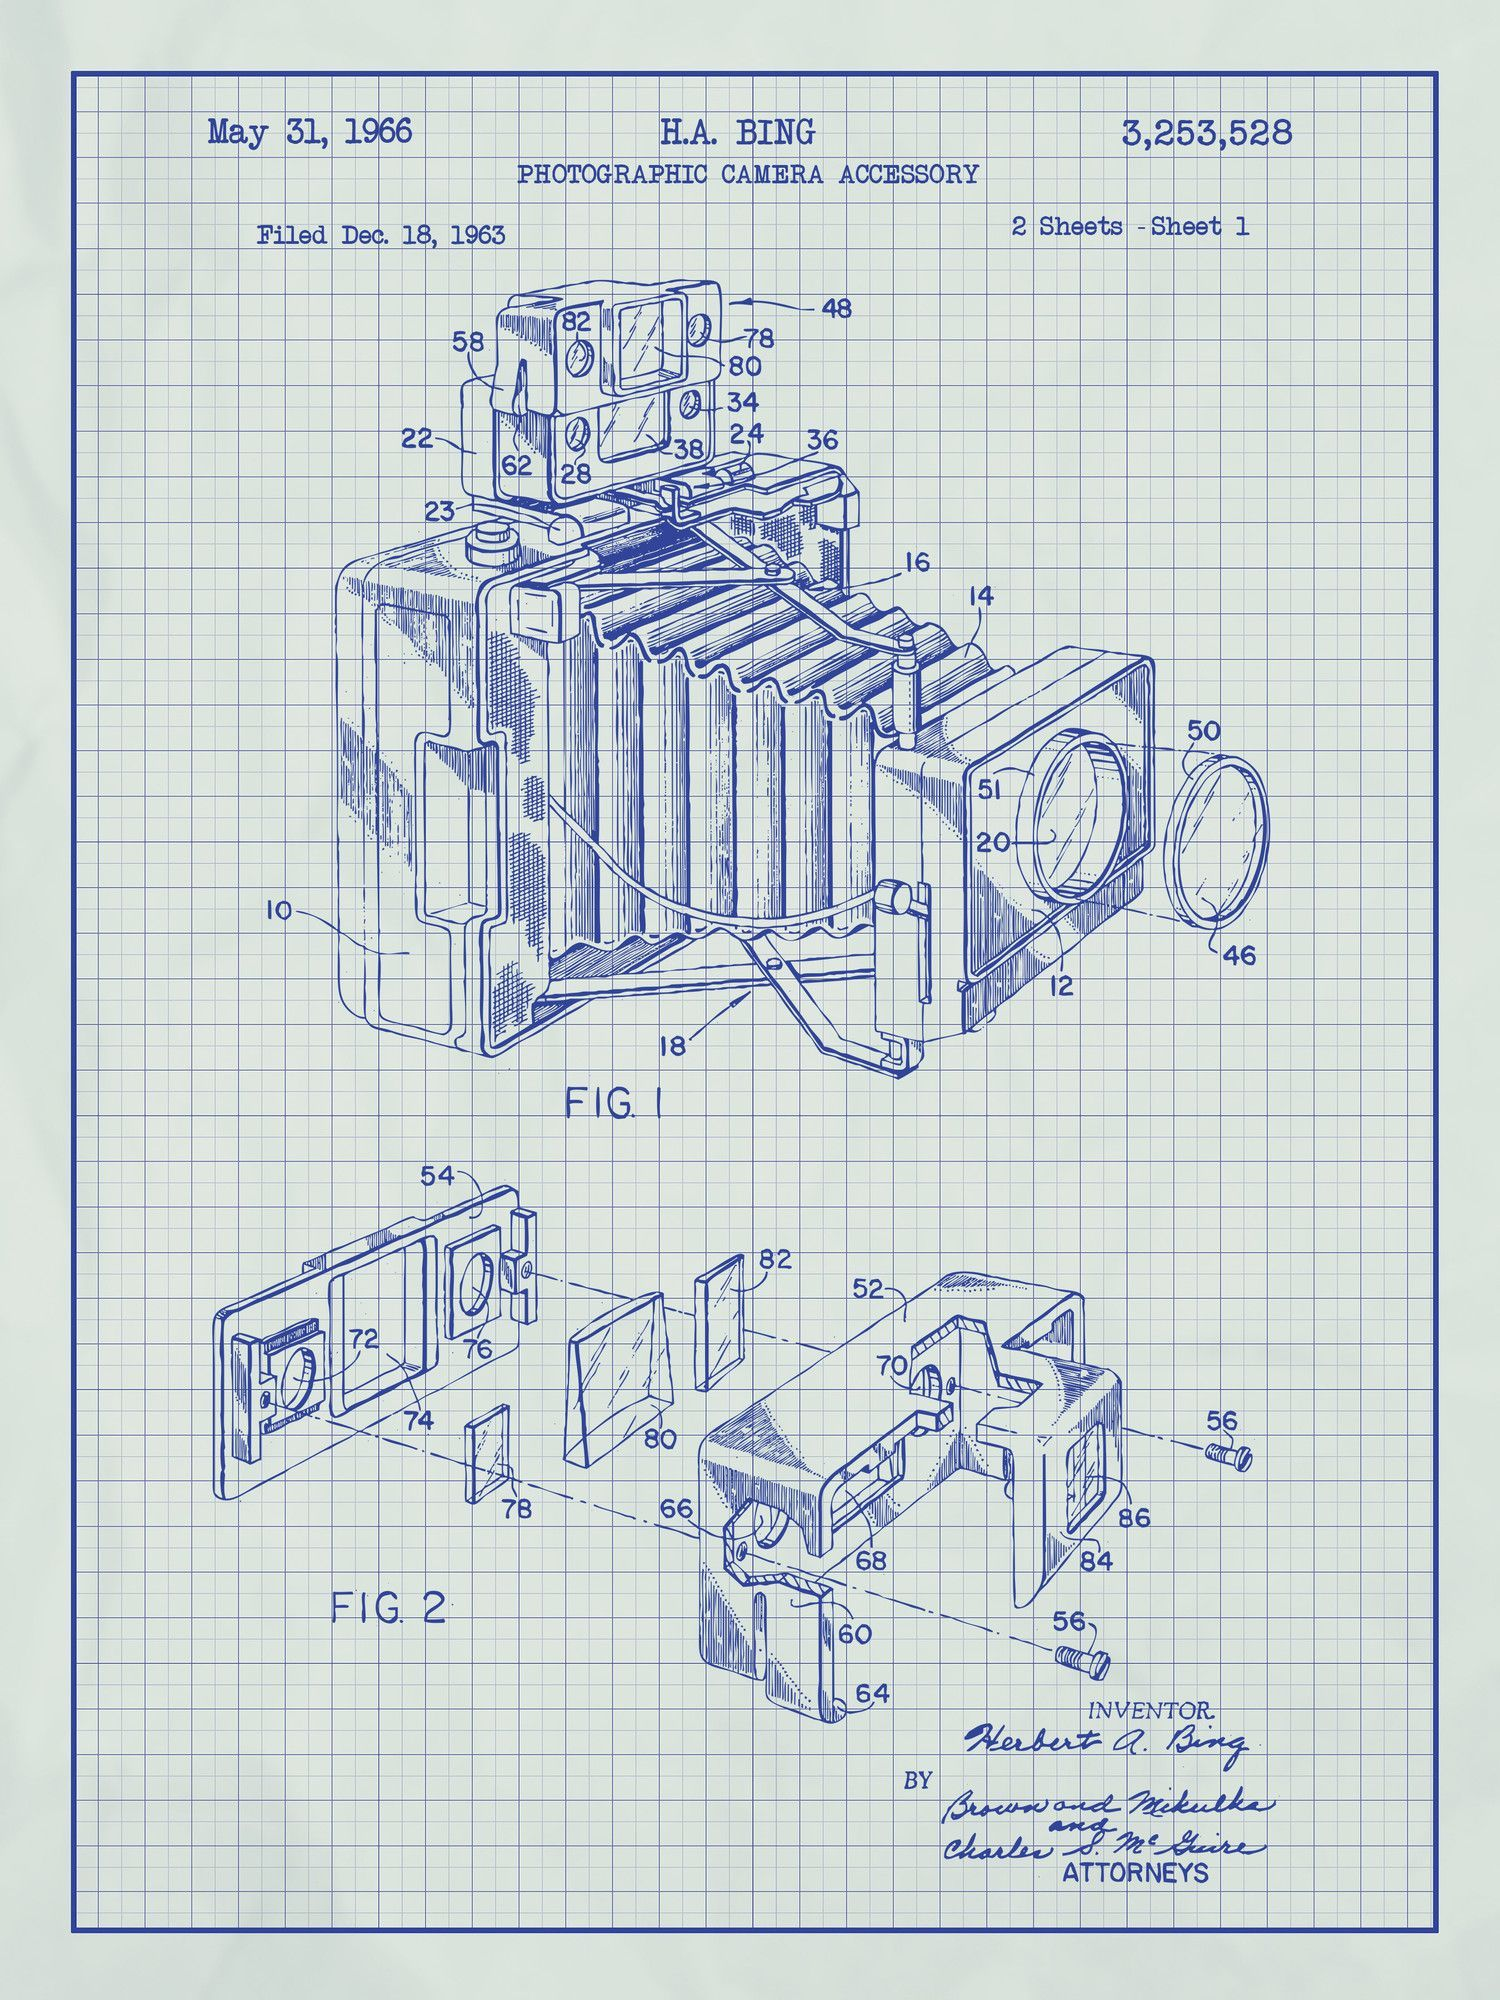 Photographic camera blueprint graphic art art posters graphic art photographic camera blueprint graphic art poster in white gridblue ink malvernweather